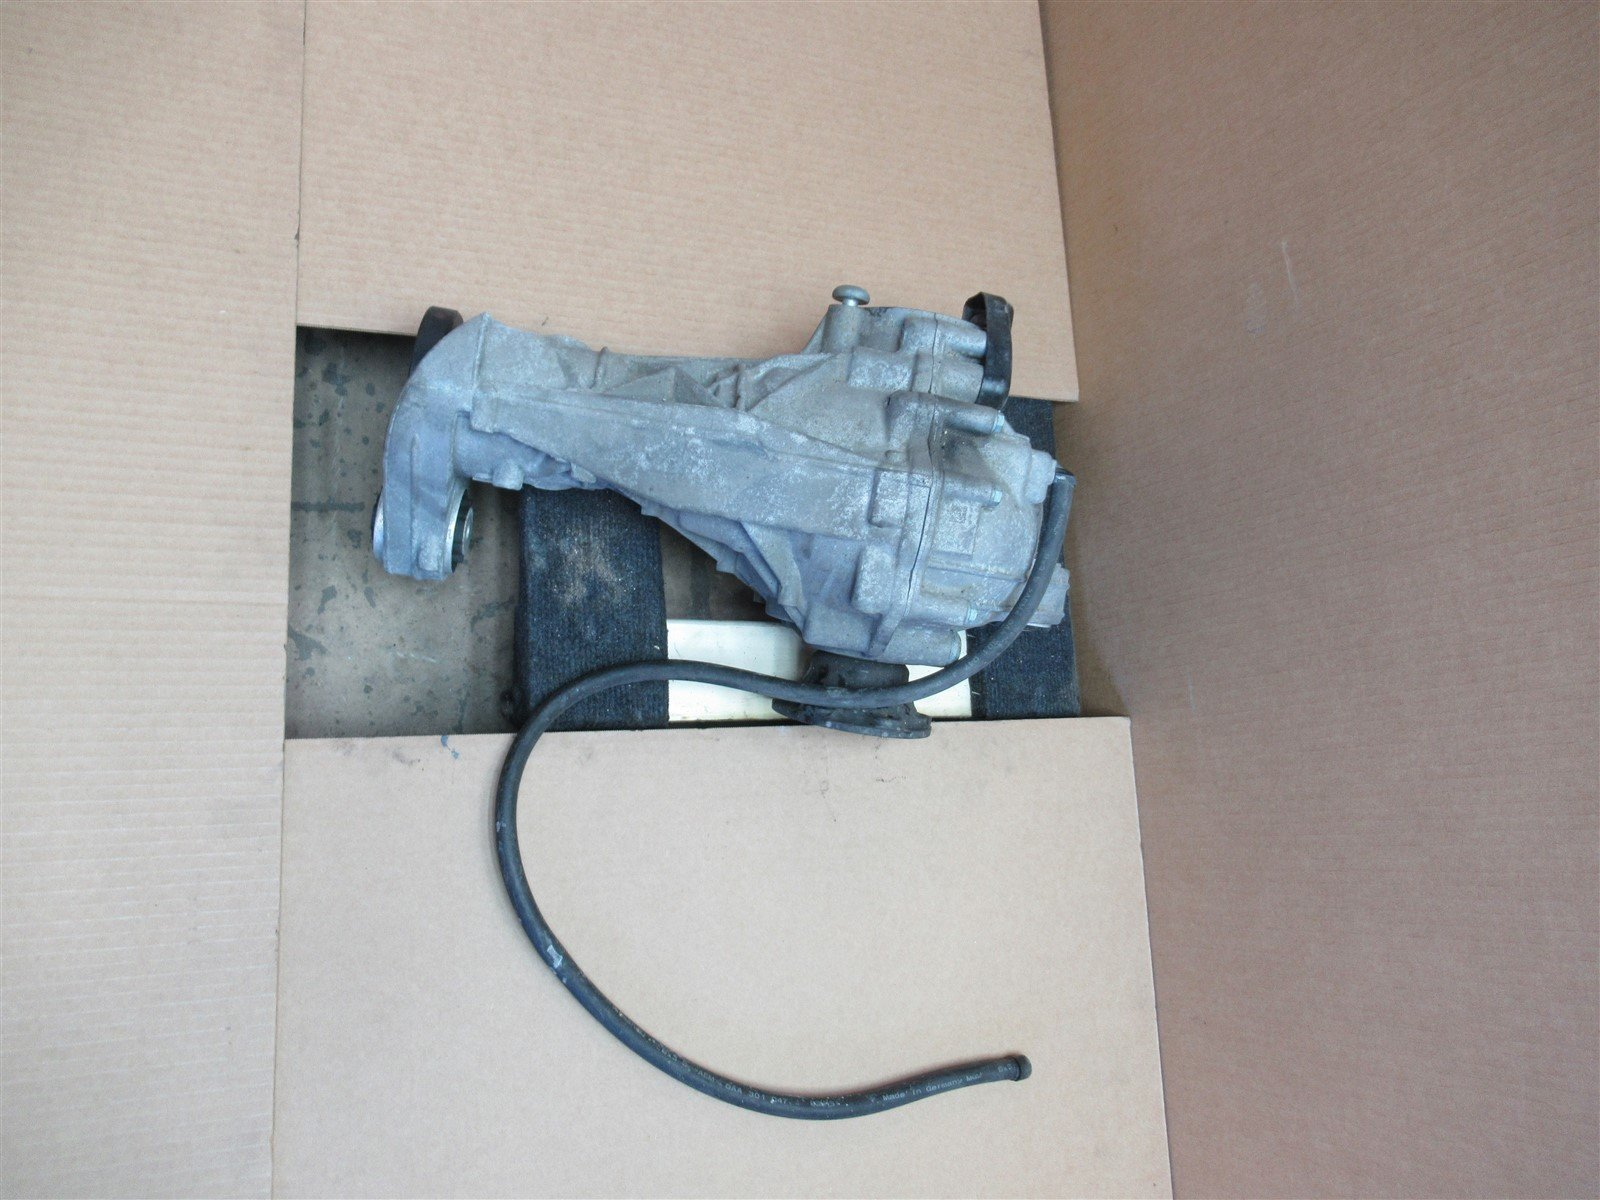 04 Cayenne Turbo AWD Porsche 955 FRONT DIFFERENTIAL 4460310020 4460310021 41,010